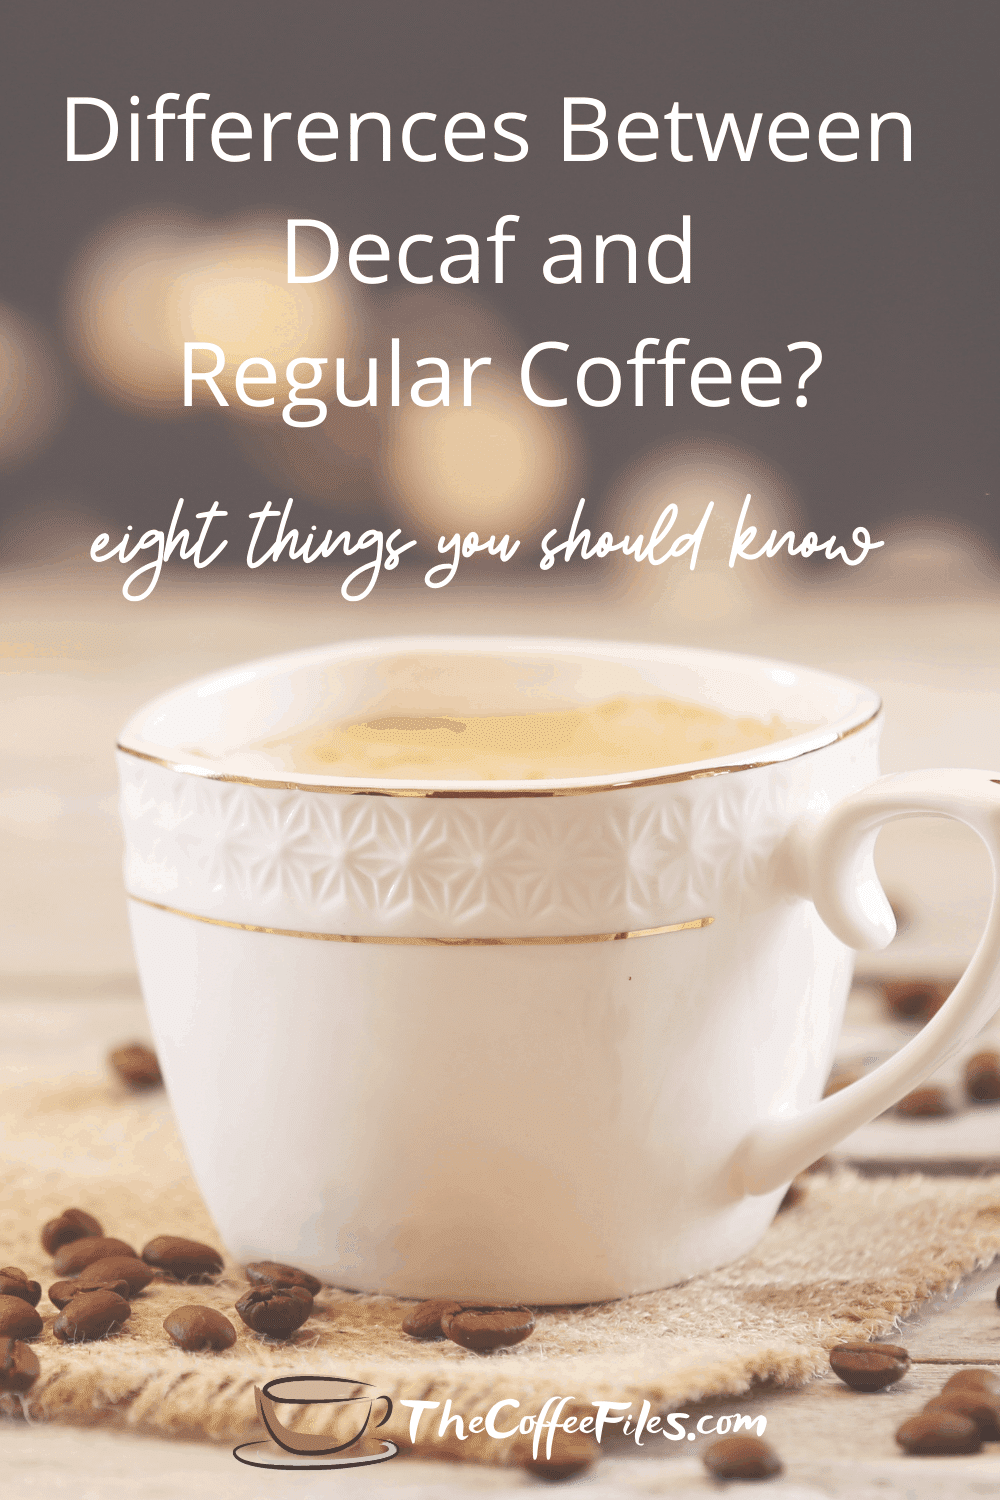 The Differences Between Decaf and Regular Coffee